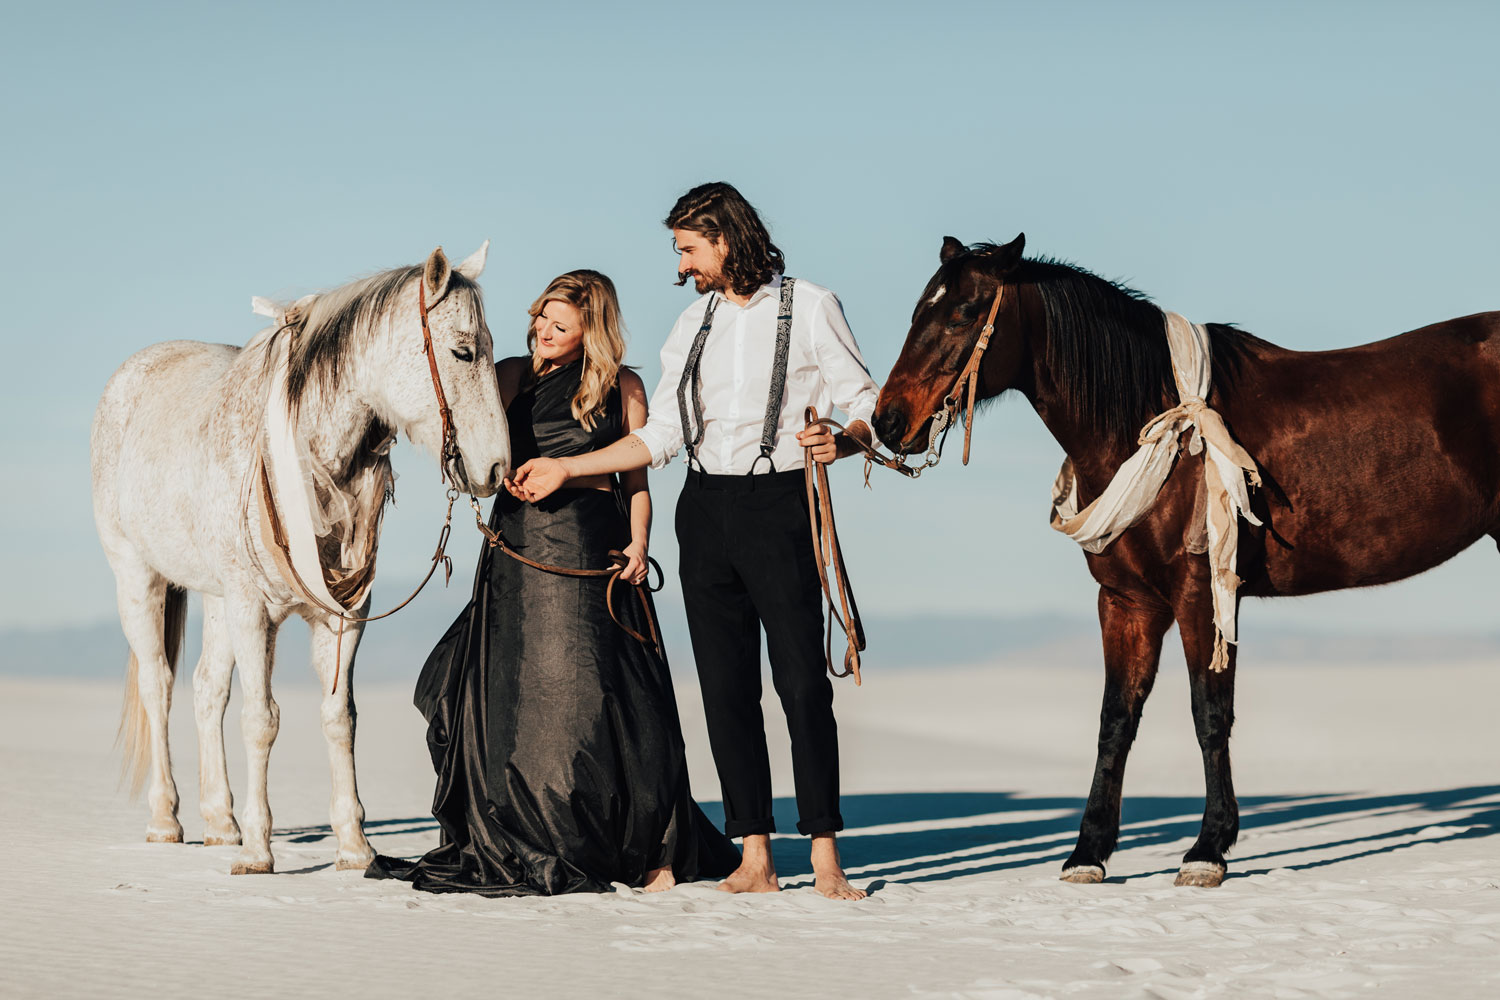 engagement photo shoot at White Sands National Monument in New Mexico engagement photos couple with horses